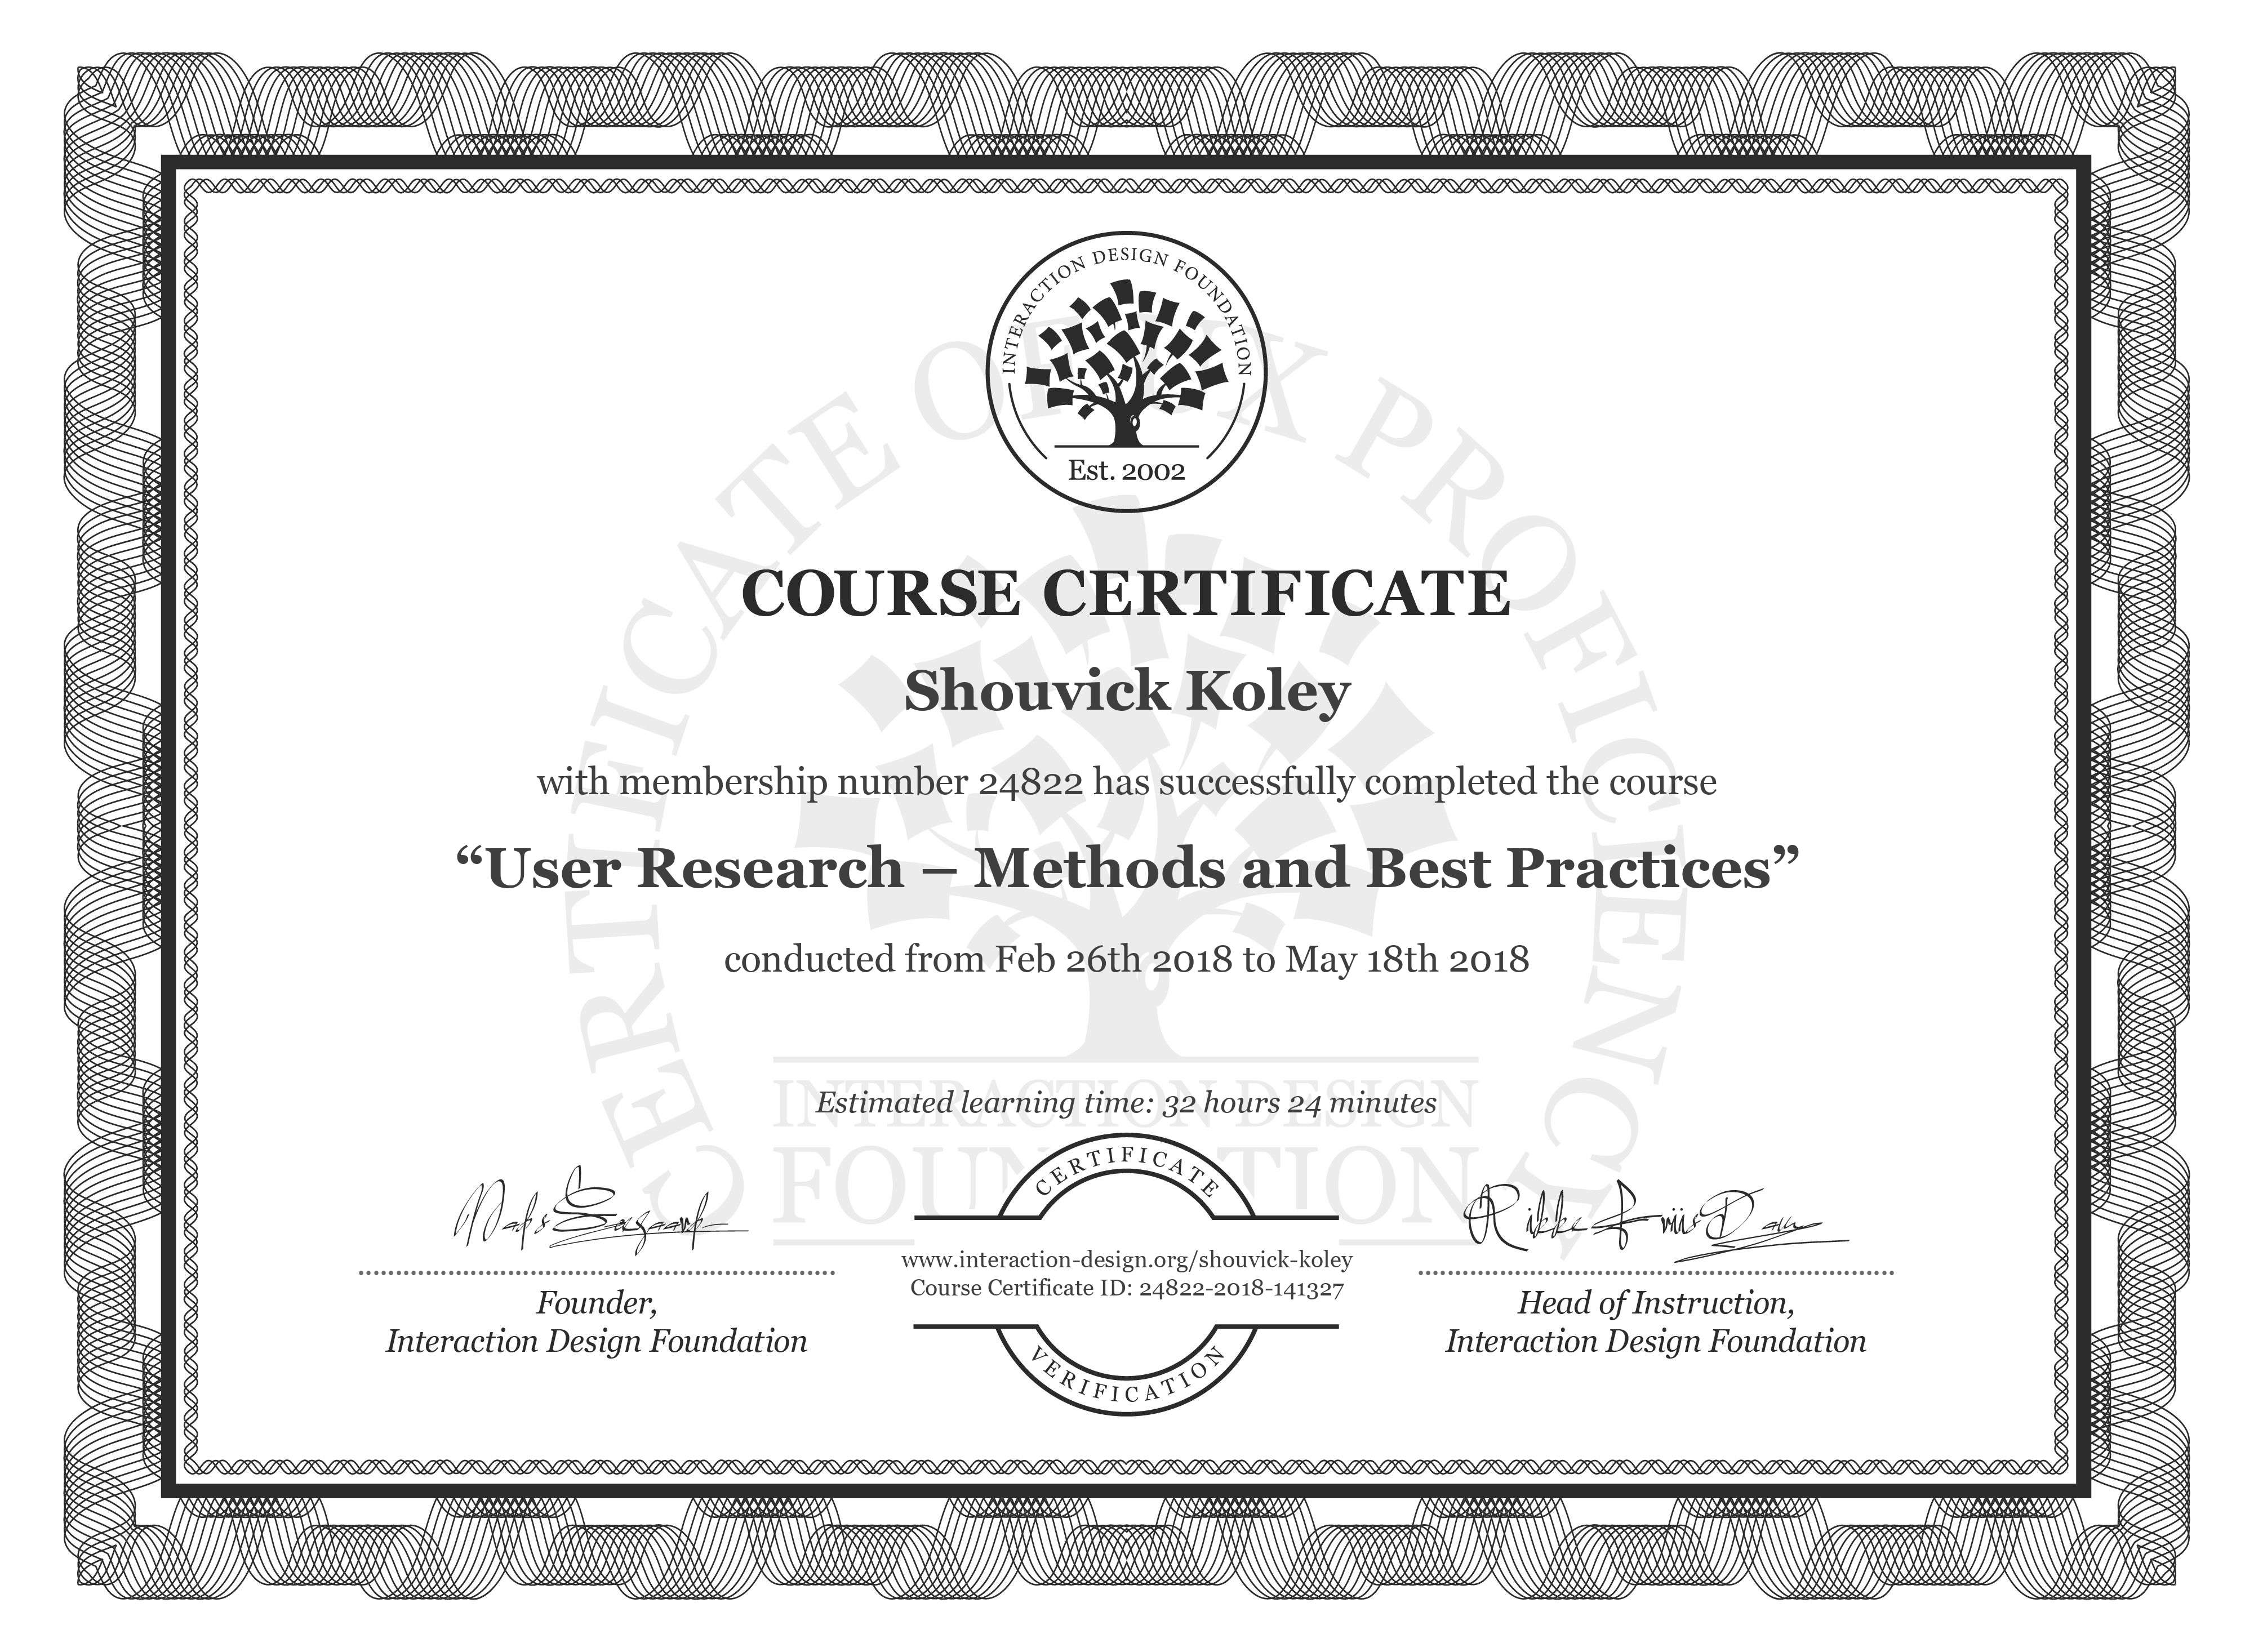 Shouvick Koley: Course Certificate - User Research – Methods and Best Practices